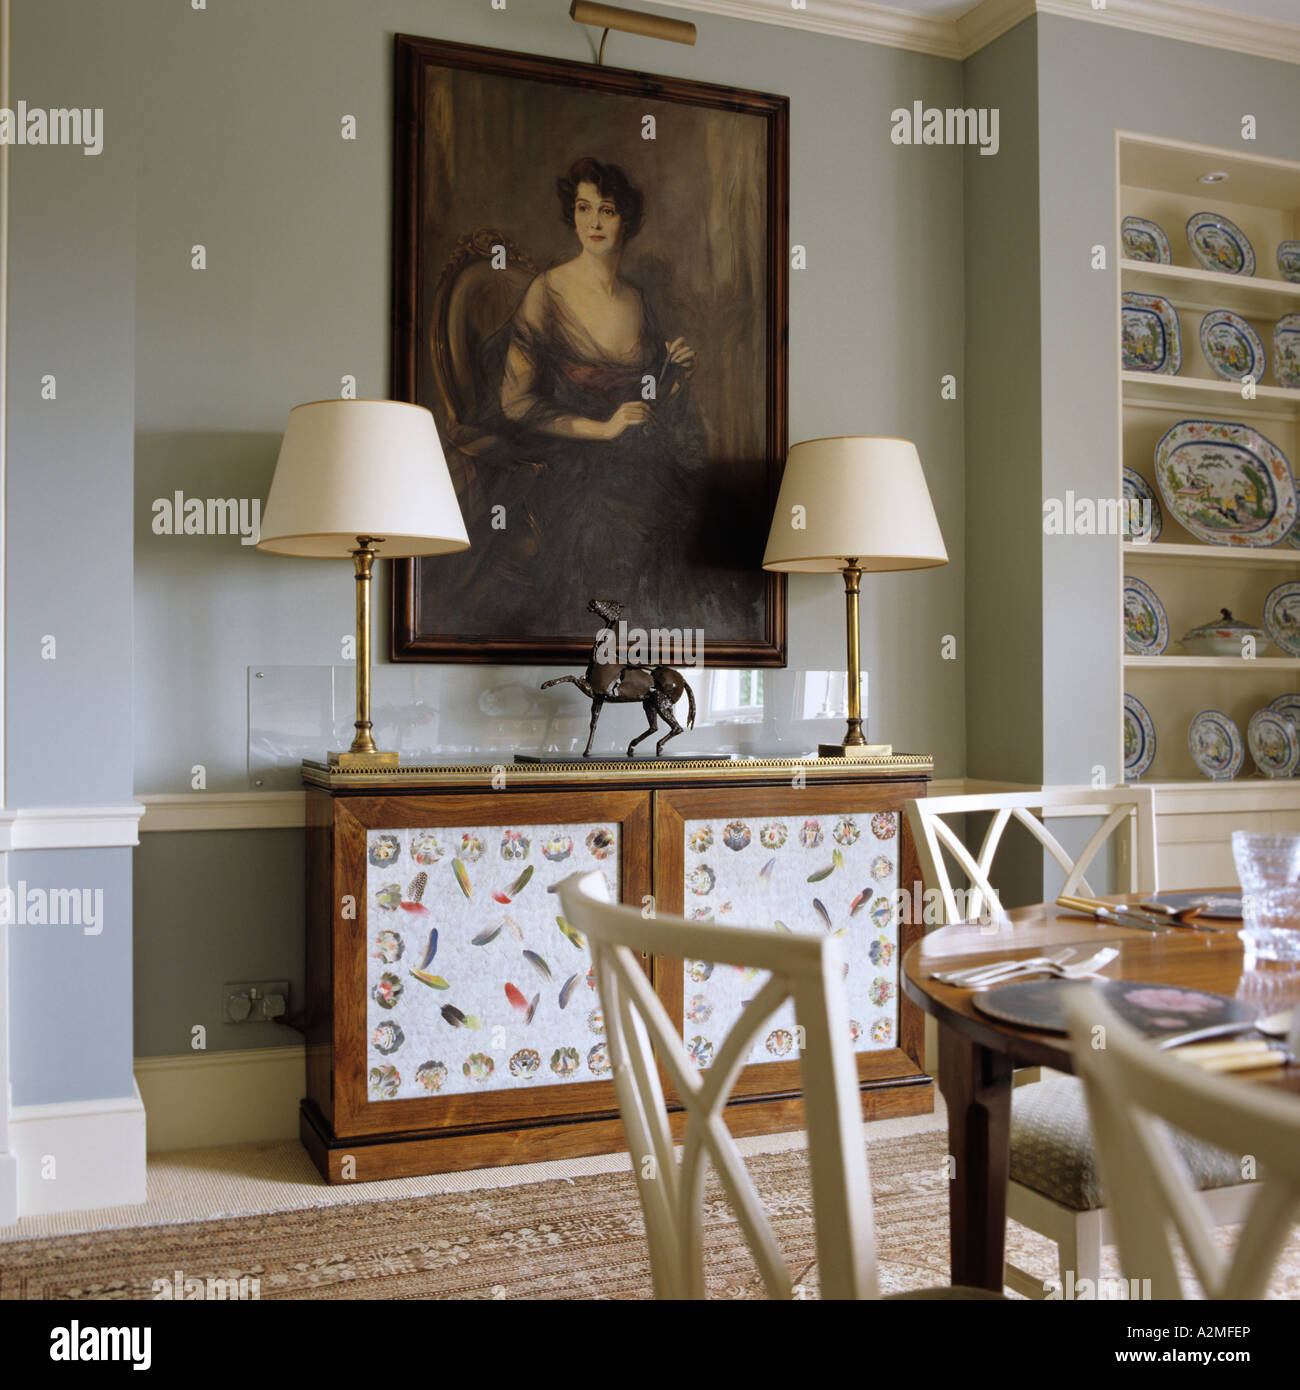 Sala Da Pranzo Traduzione Inglese Dining Room With Oil Panting And Lamps In English Country